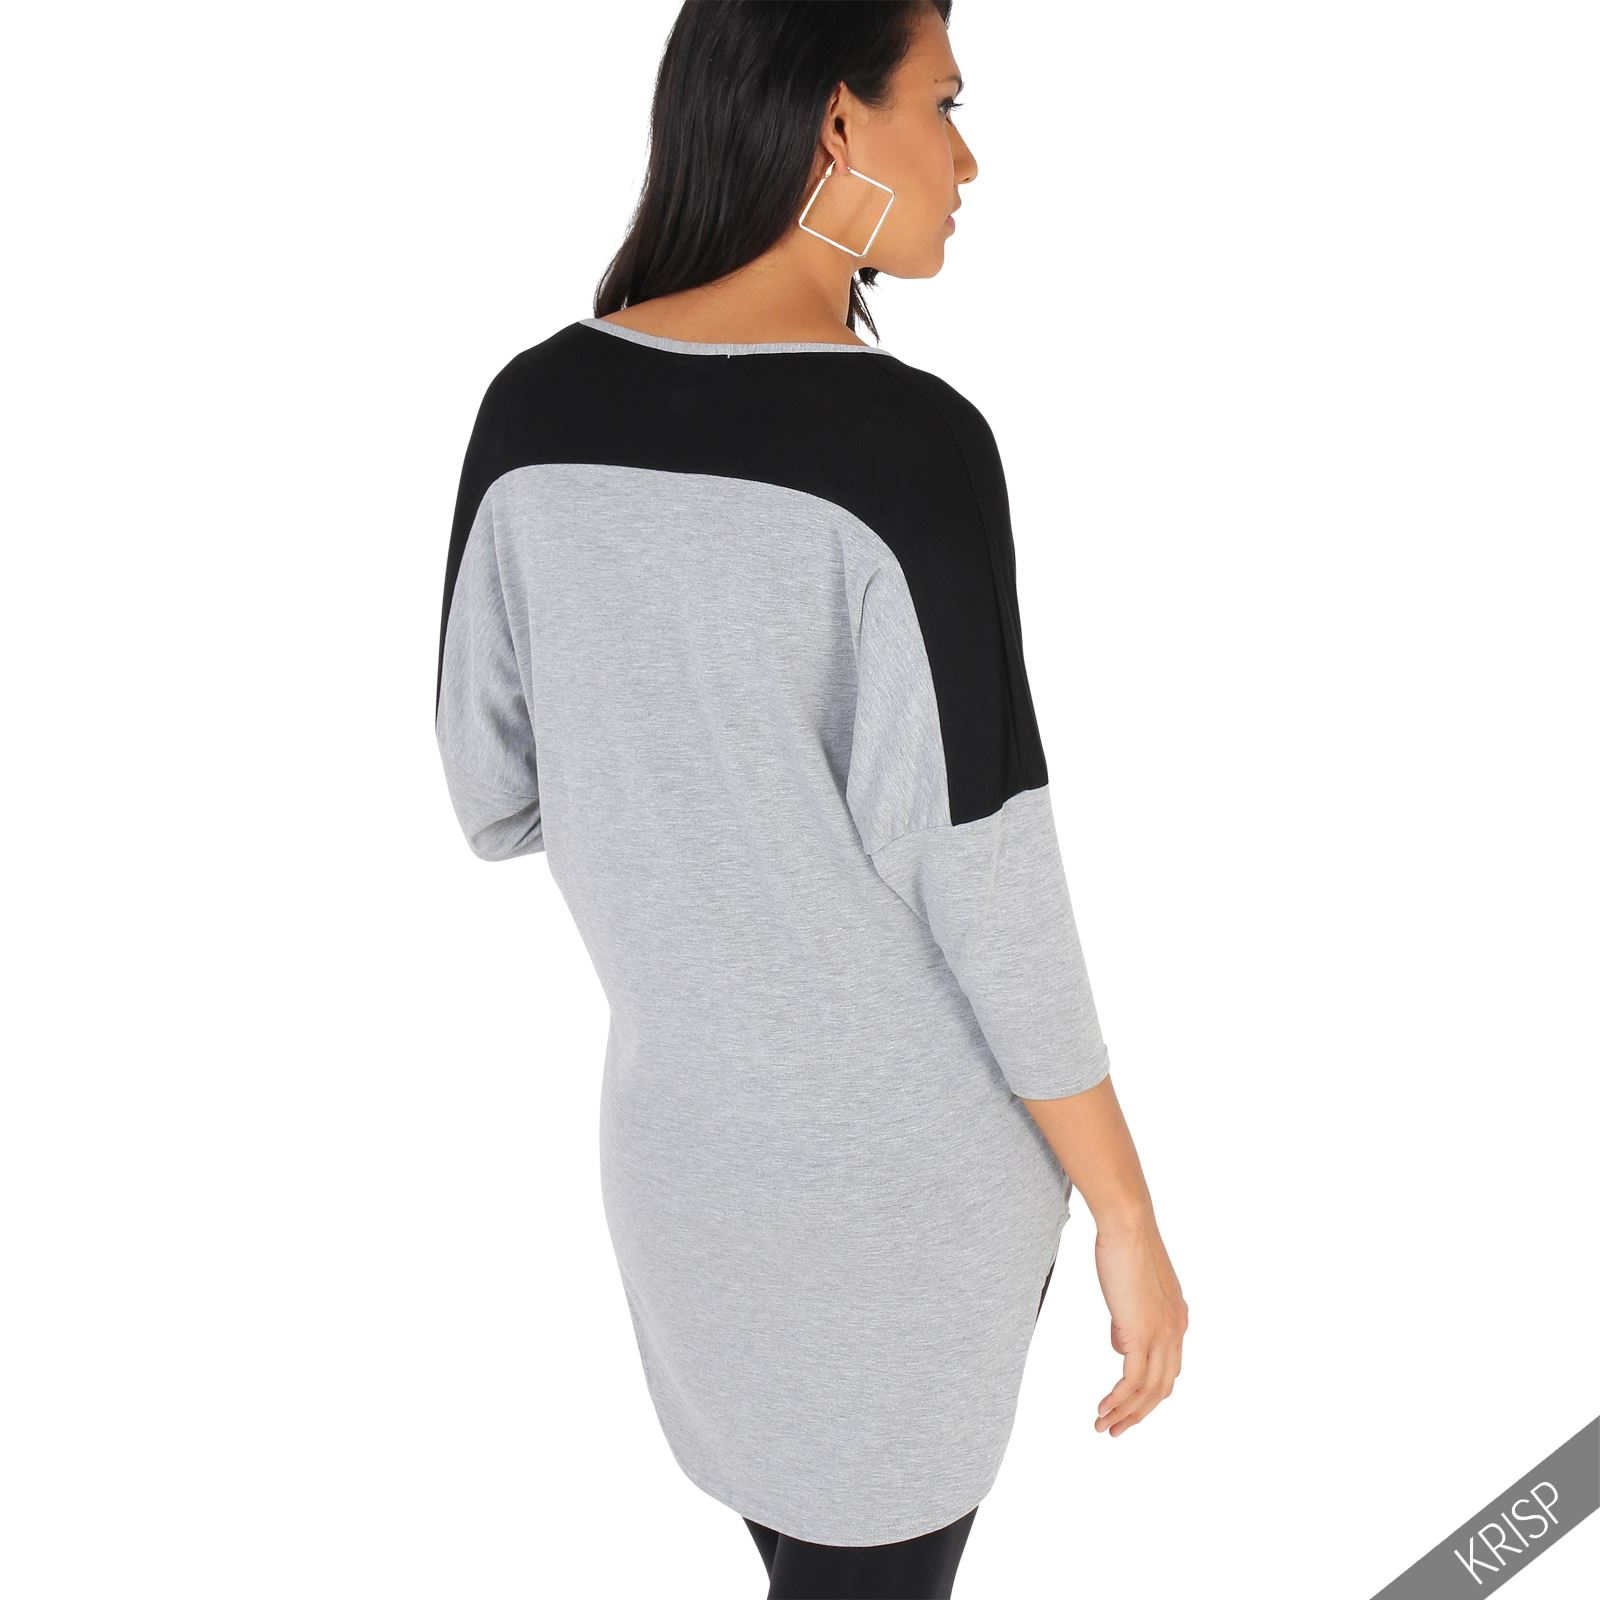 Maternity-Batwing-Baggy-Loose-T-Shirt-Tunic-Top-3-4-Sleeve-Dip-Hem-Long-Casual thumbnail 7